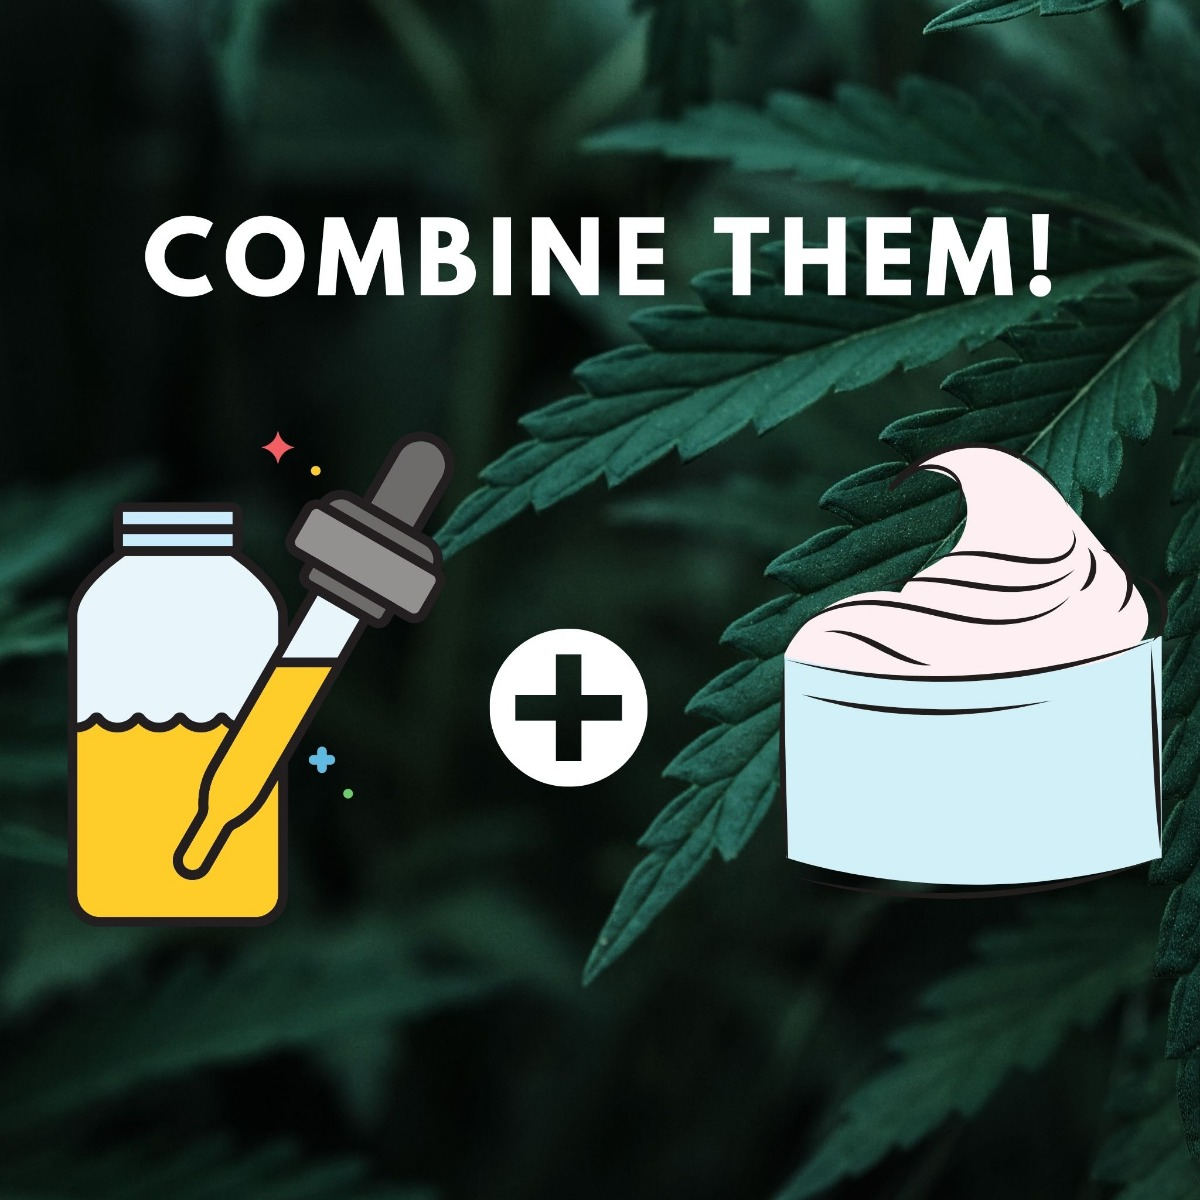 CBD lotion and CBD Tincture with a plus sign in the middle and text saying combine them!